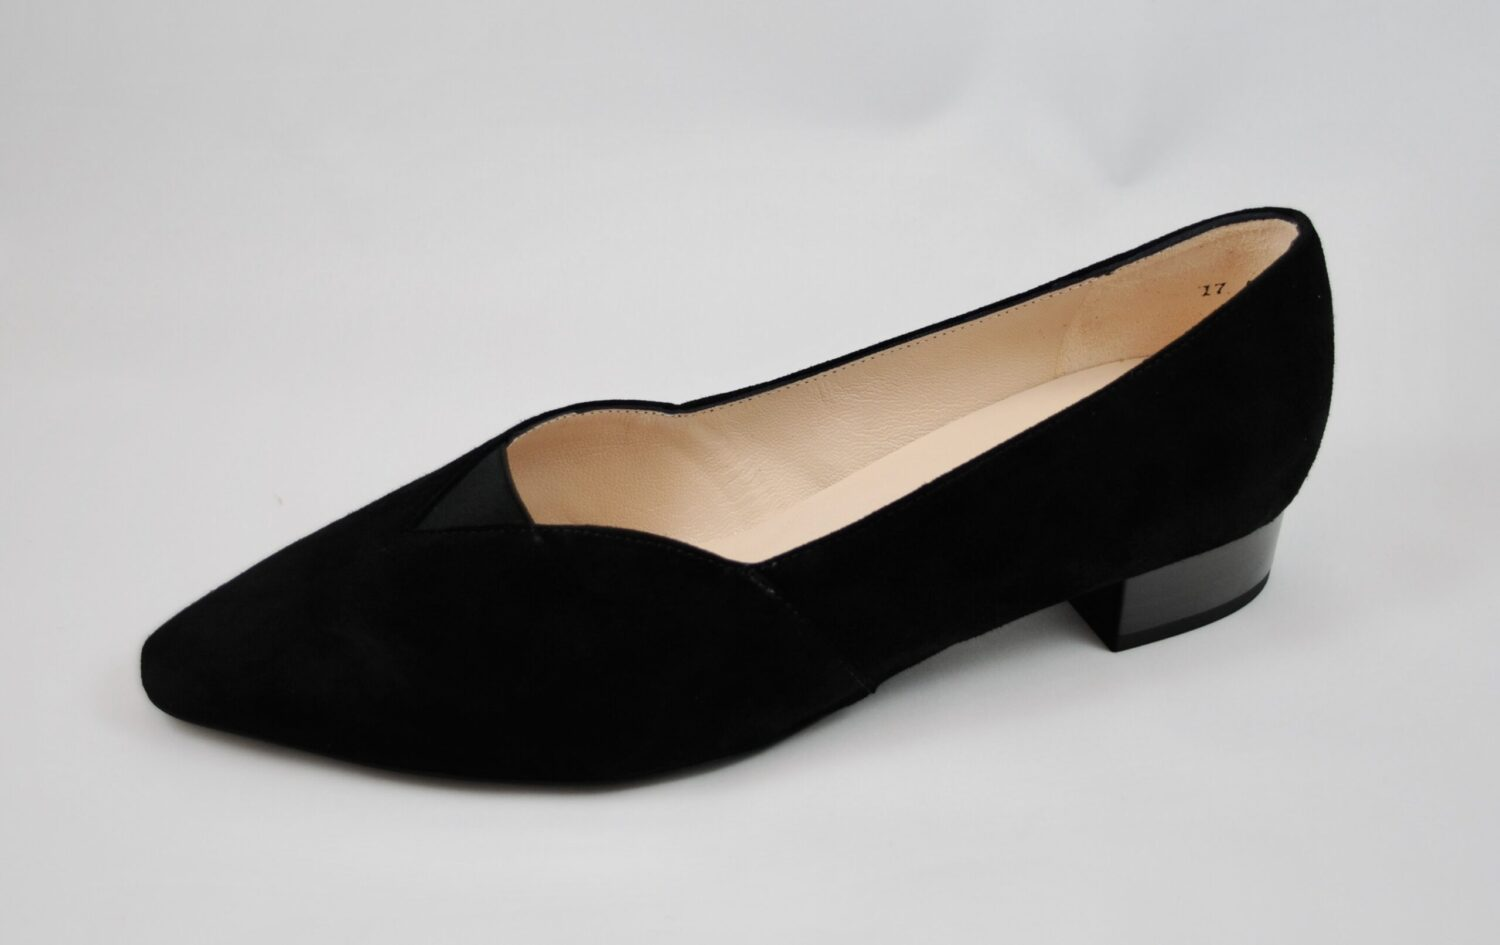 Peter Kaiser Abina Black Suede Pump